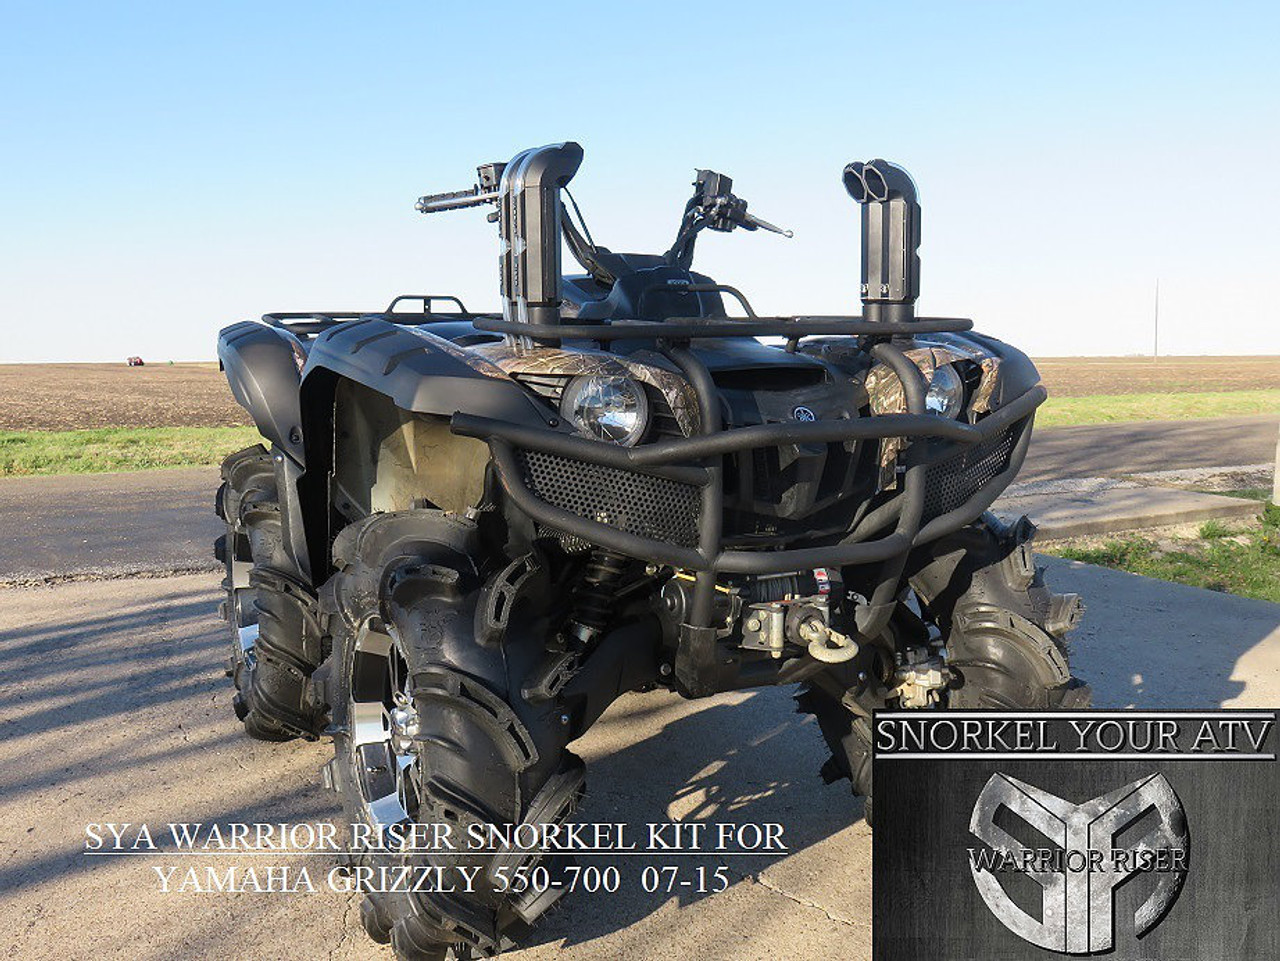 hight resolution of  yamaha grizzly 700 sya warrior snorkel kit add to cart buy